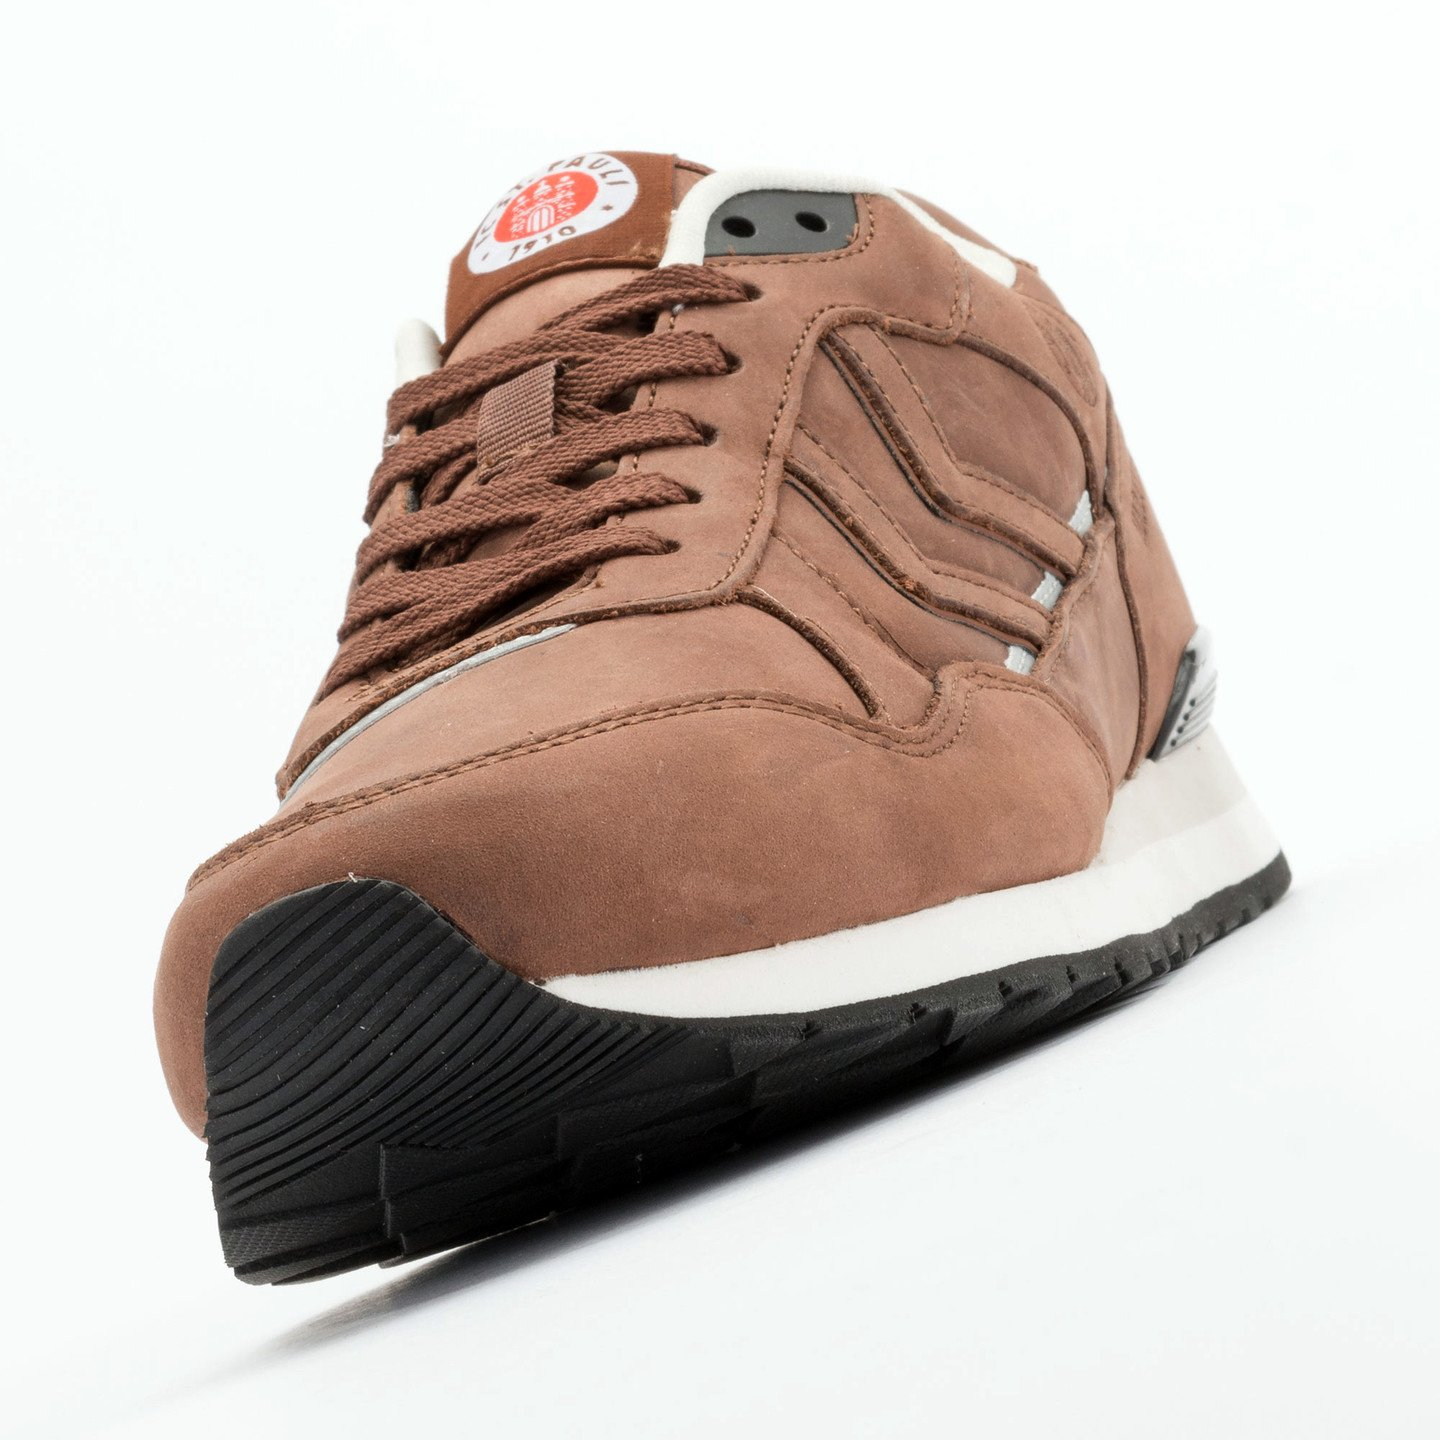 Hummel Marathona Low x St.Pauli Dark Brown 63-821-8225